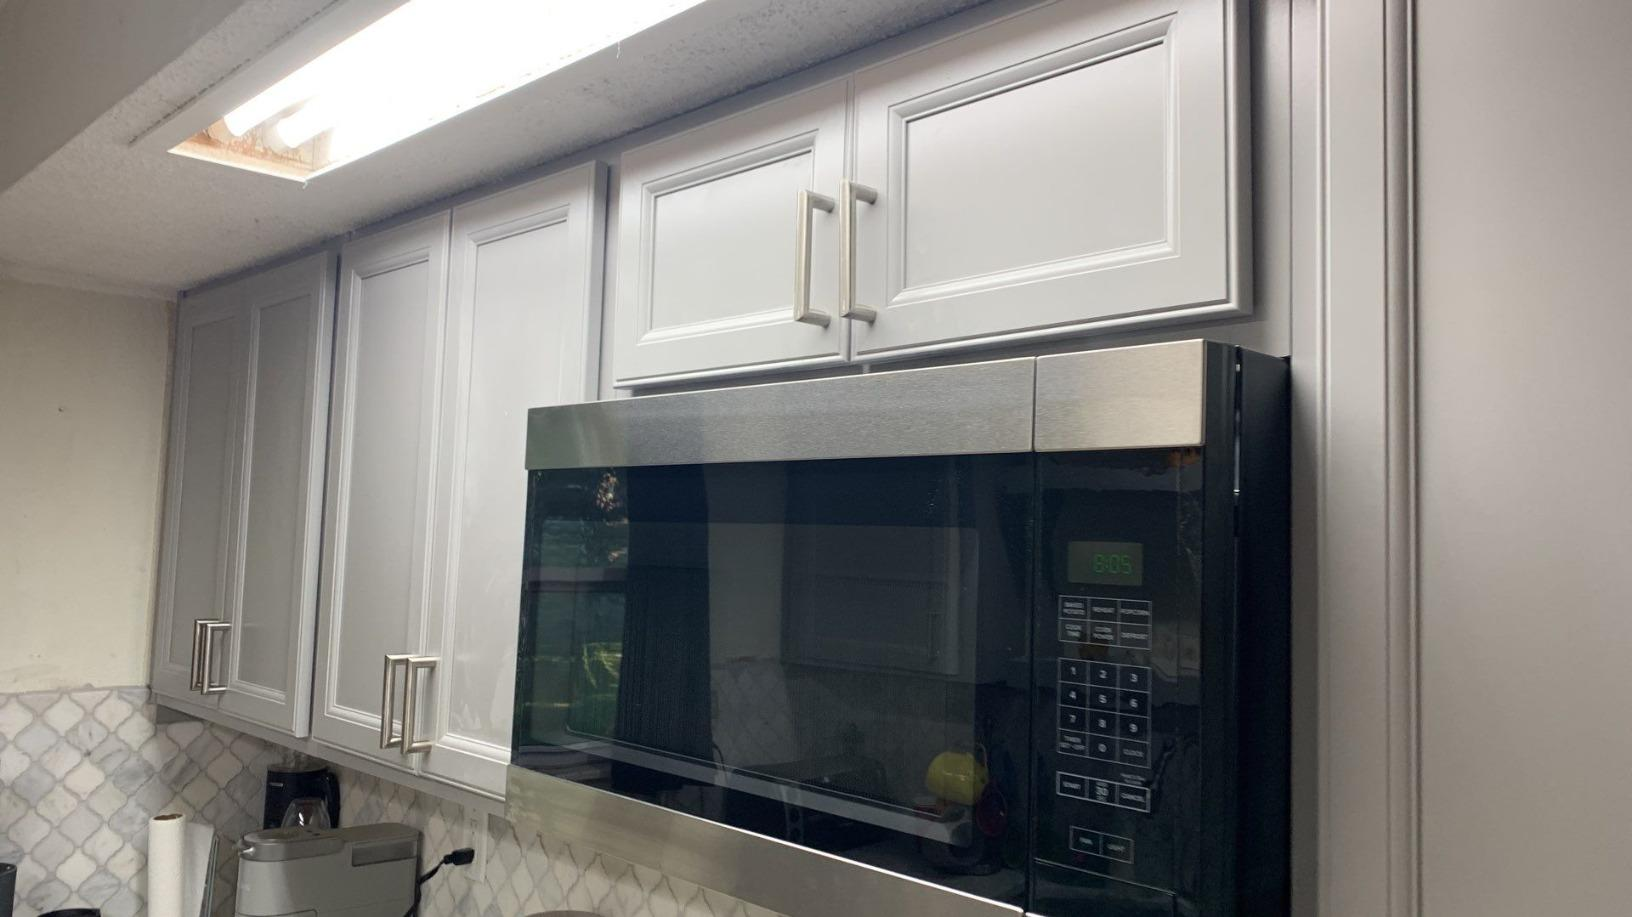 Cabinets with Full Extension Drawer Glides & Hidden Hinges in Kansas City, MO Kitchen - After Photo